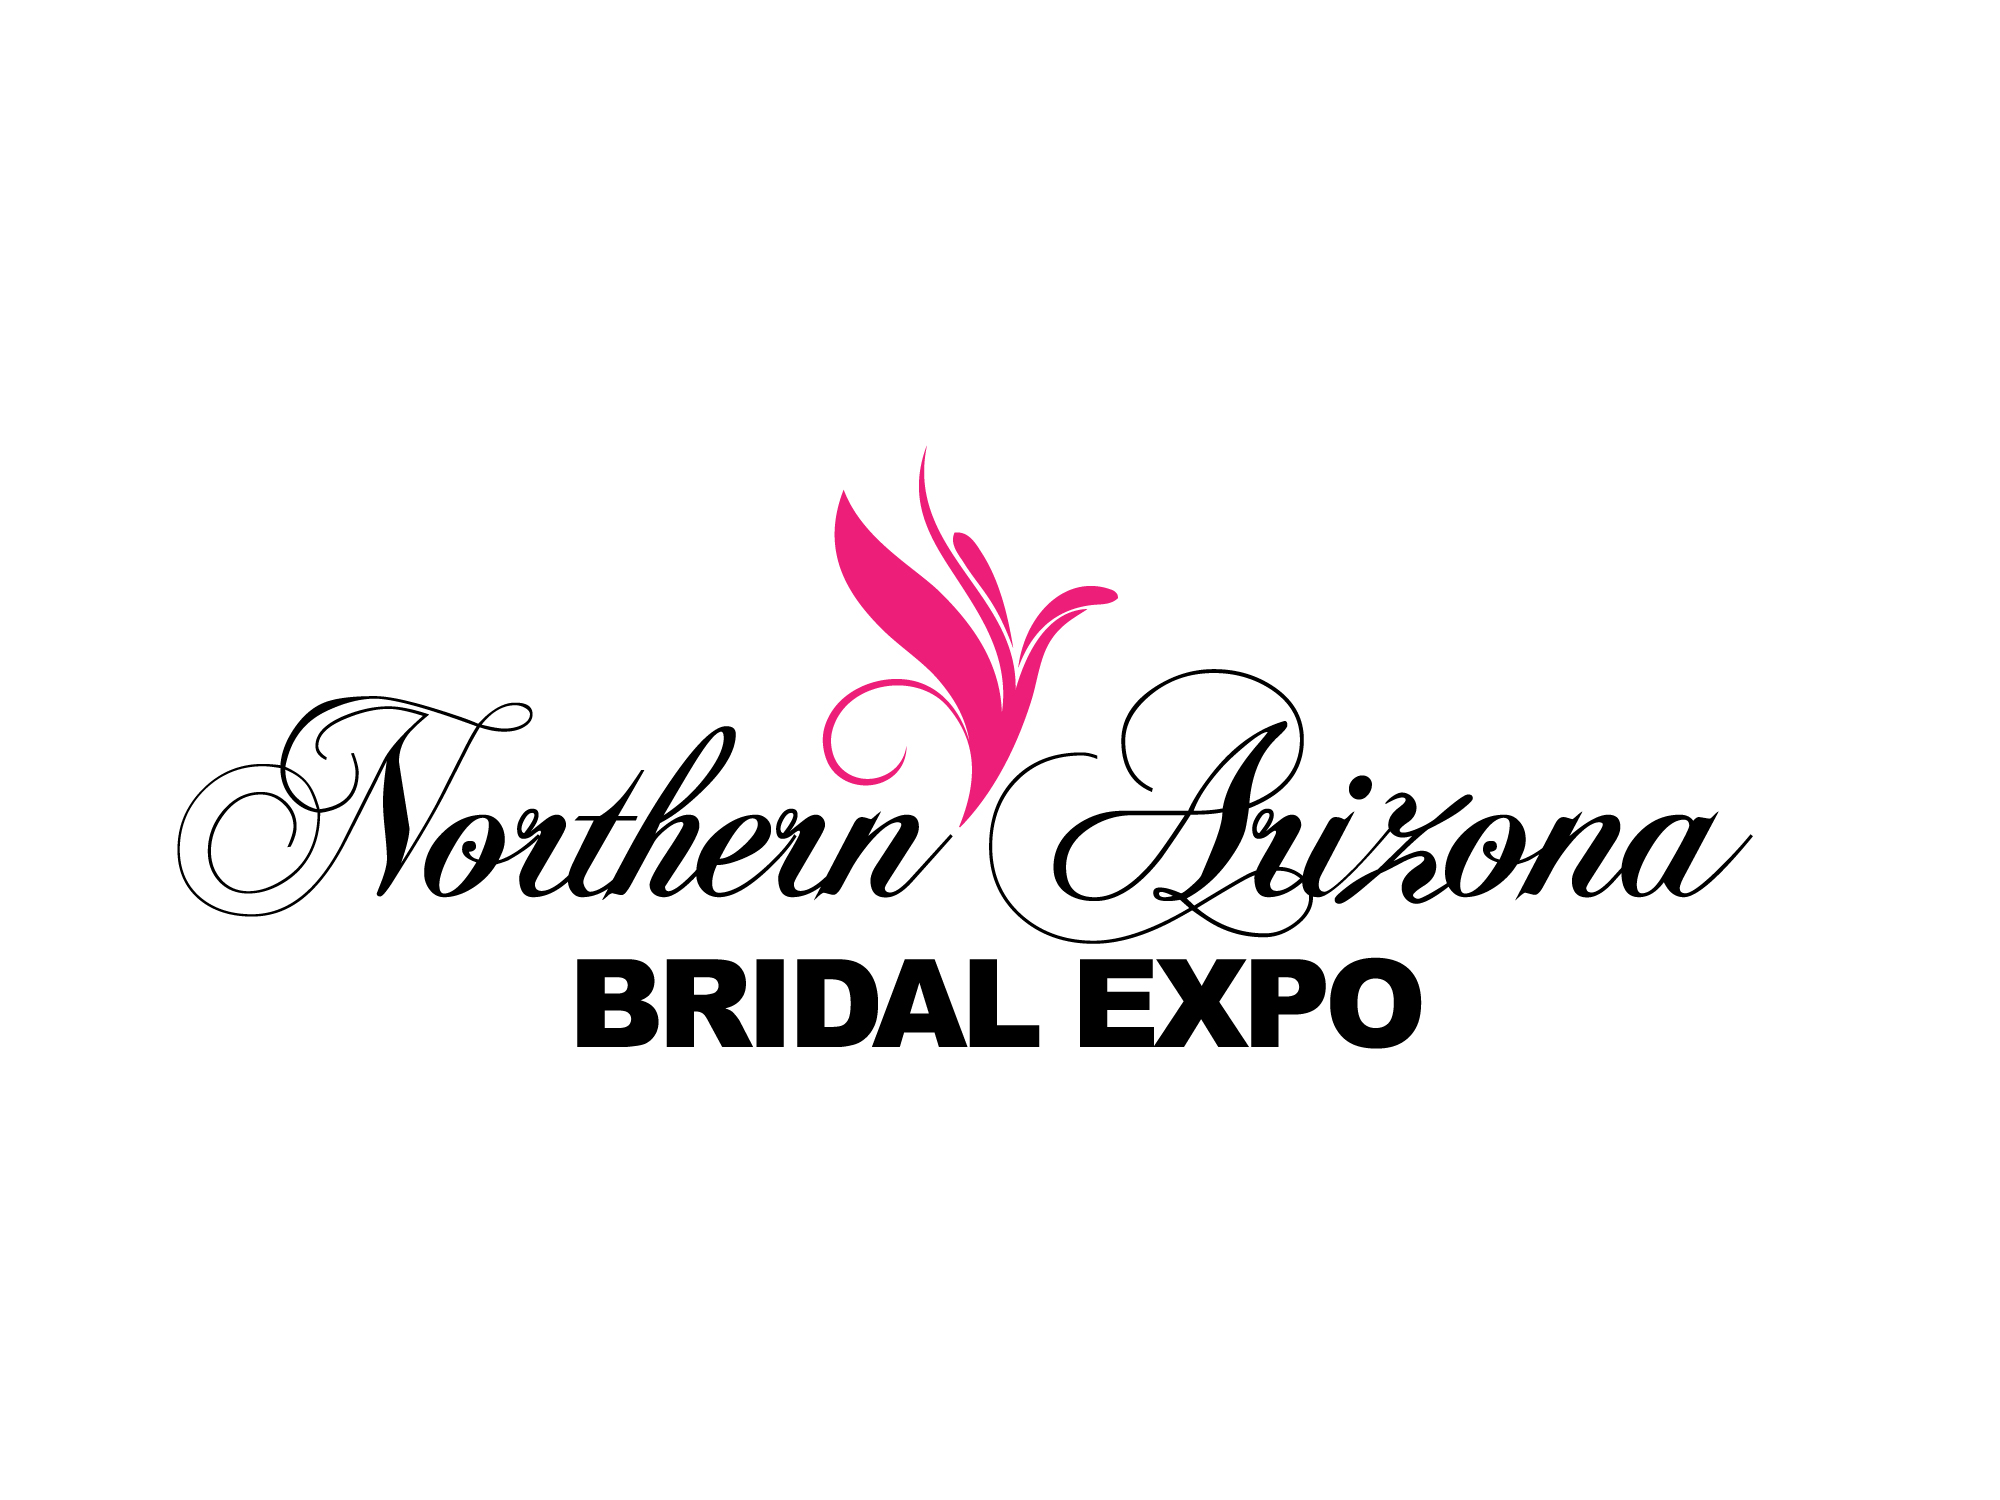 NORTHERN Az. BRIDAL EXPO